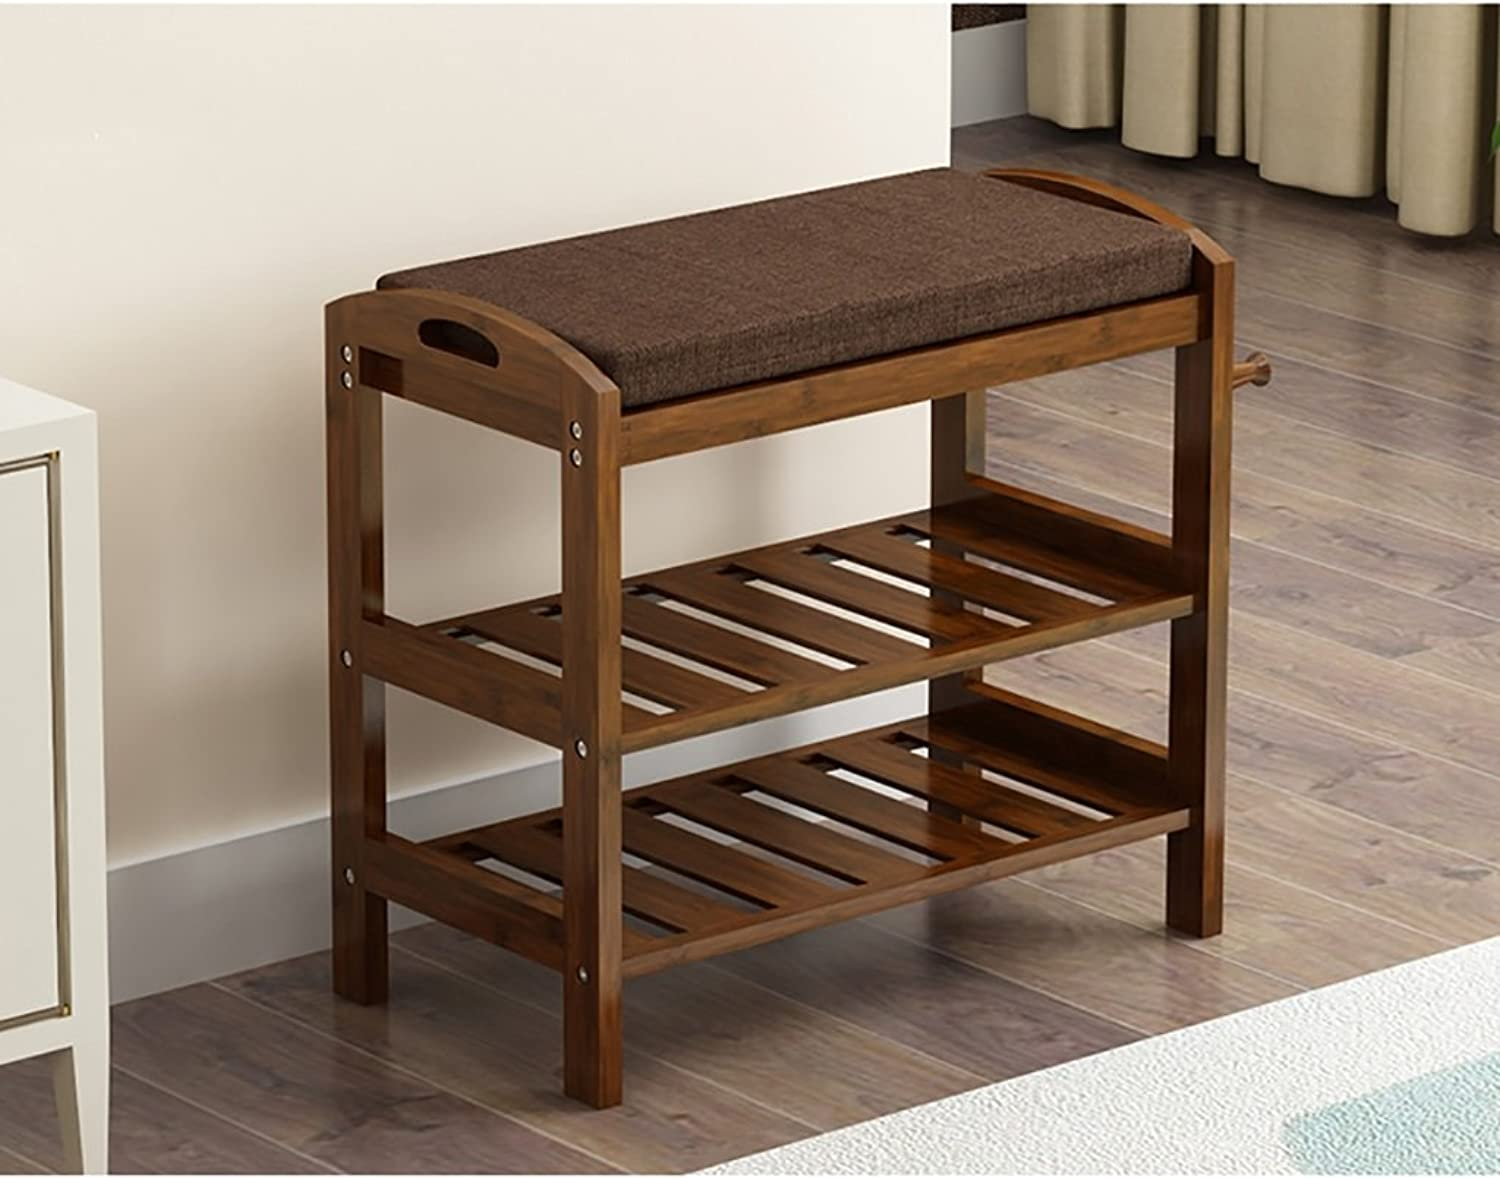 HHQ Premium Vintage Wooden shoes Organiser, Storage, Cabinet, Holder Bench Soft Seat Cushion Entryway, Hallway. (Size   A)